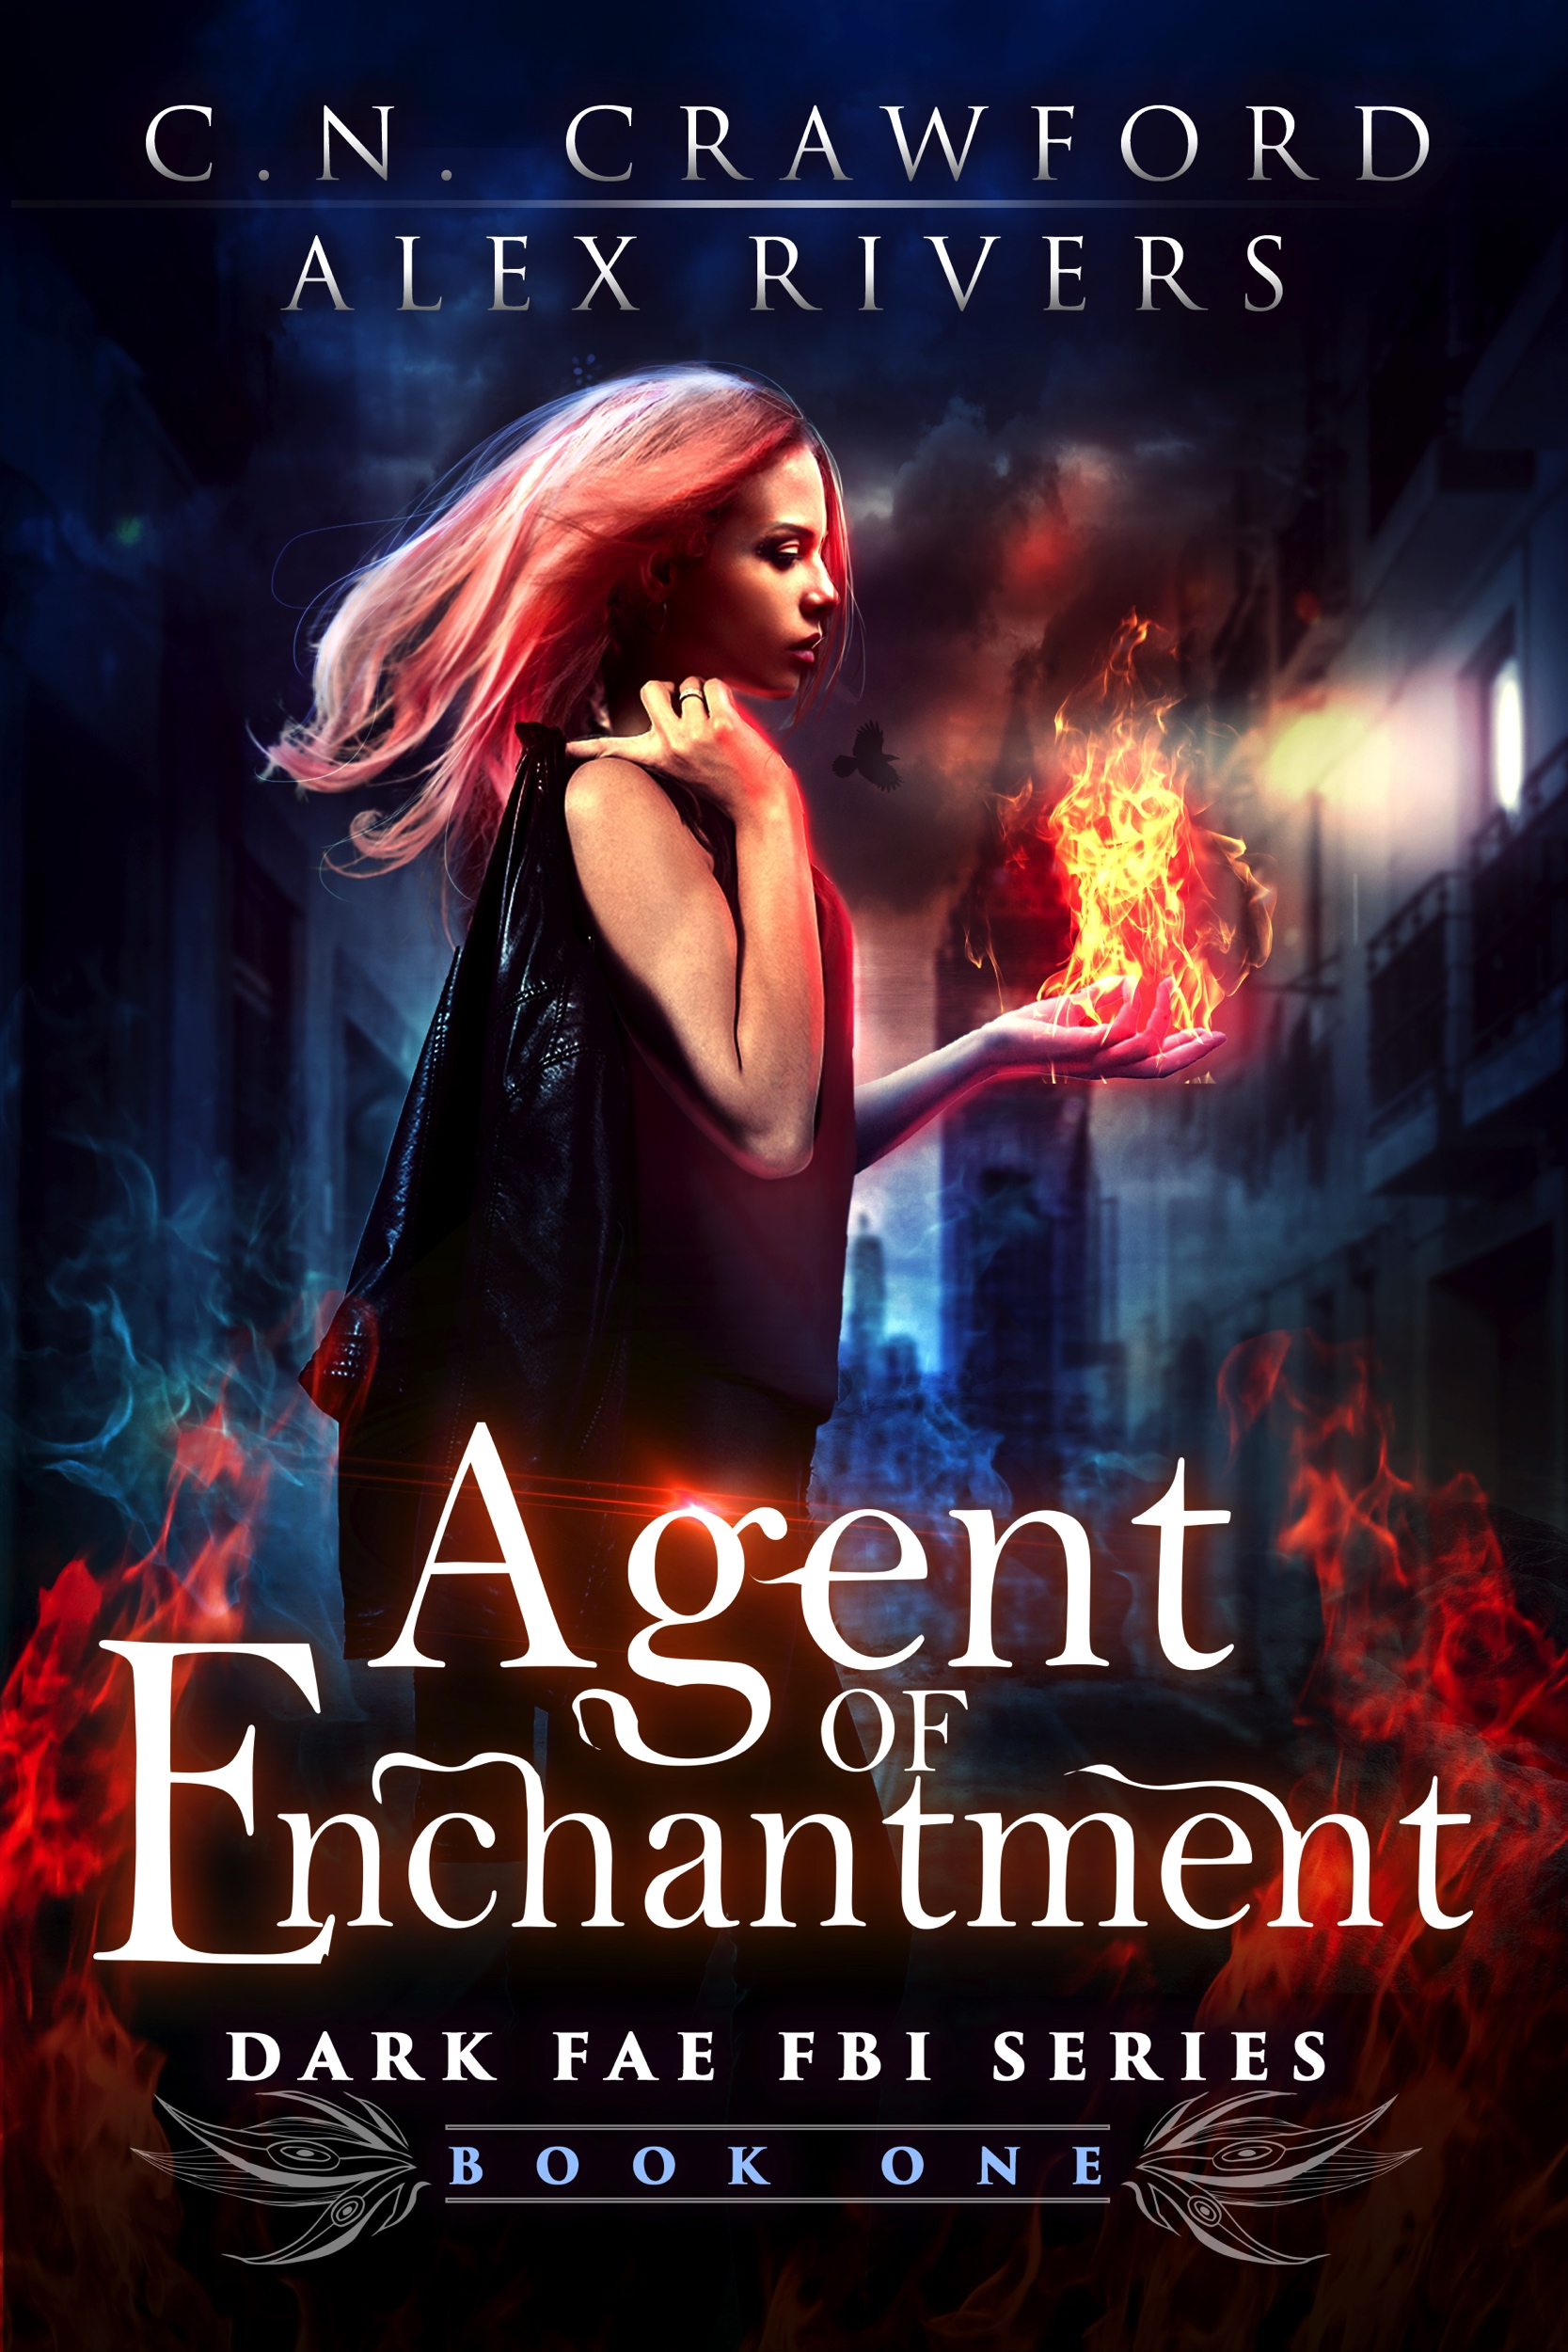 Book 1: Agent of Enchantment